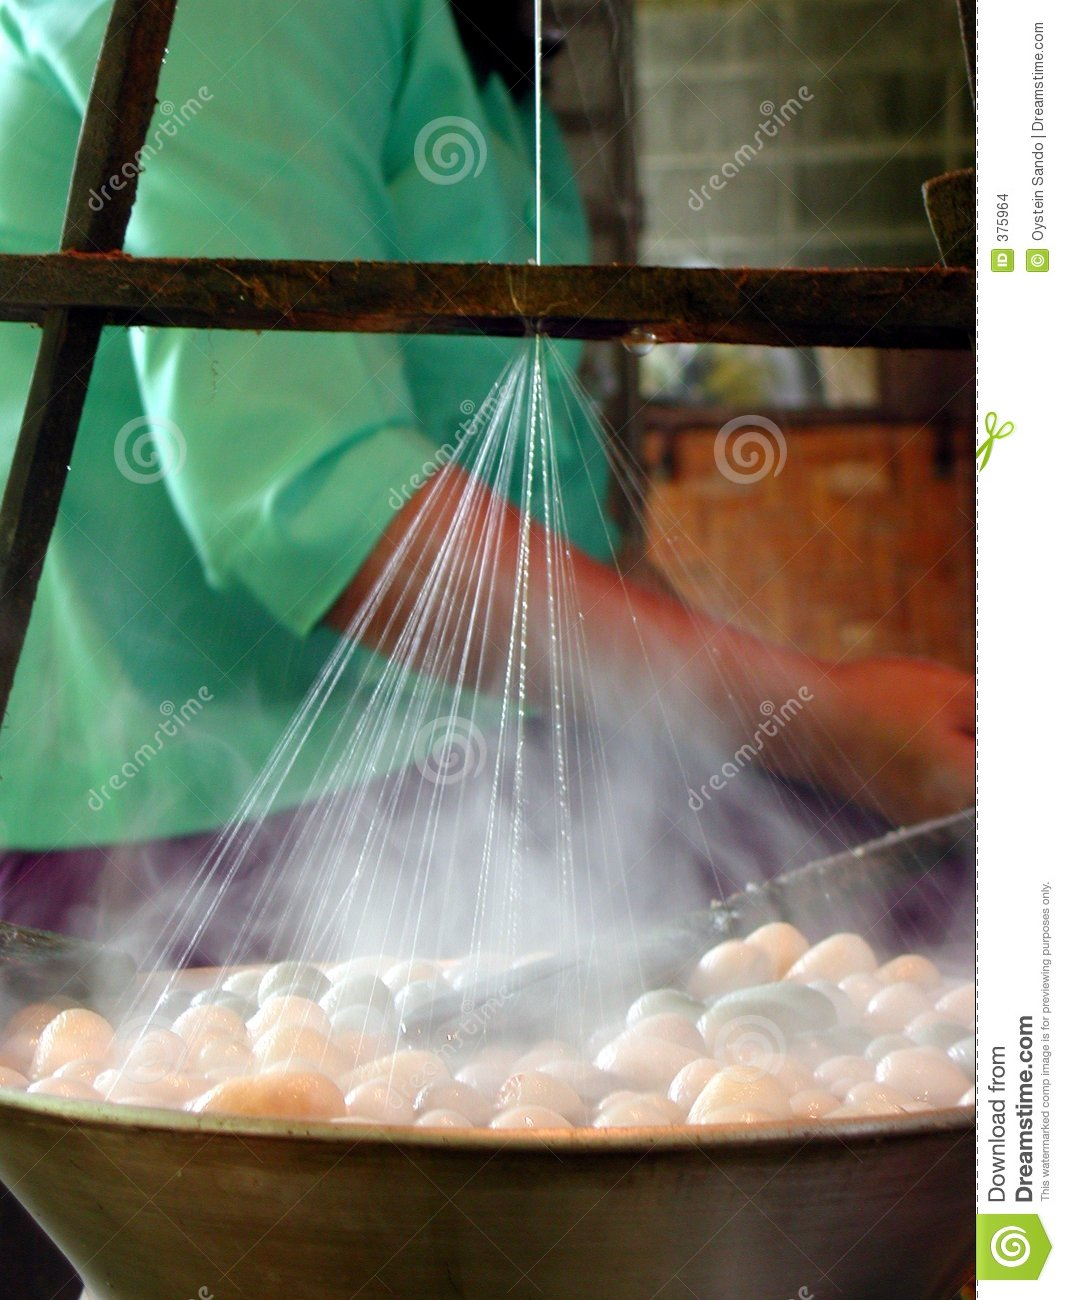 Http Www Dreamstime Com Stock Images Making Silk Image375964